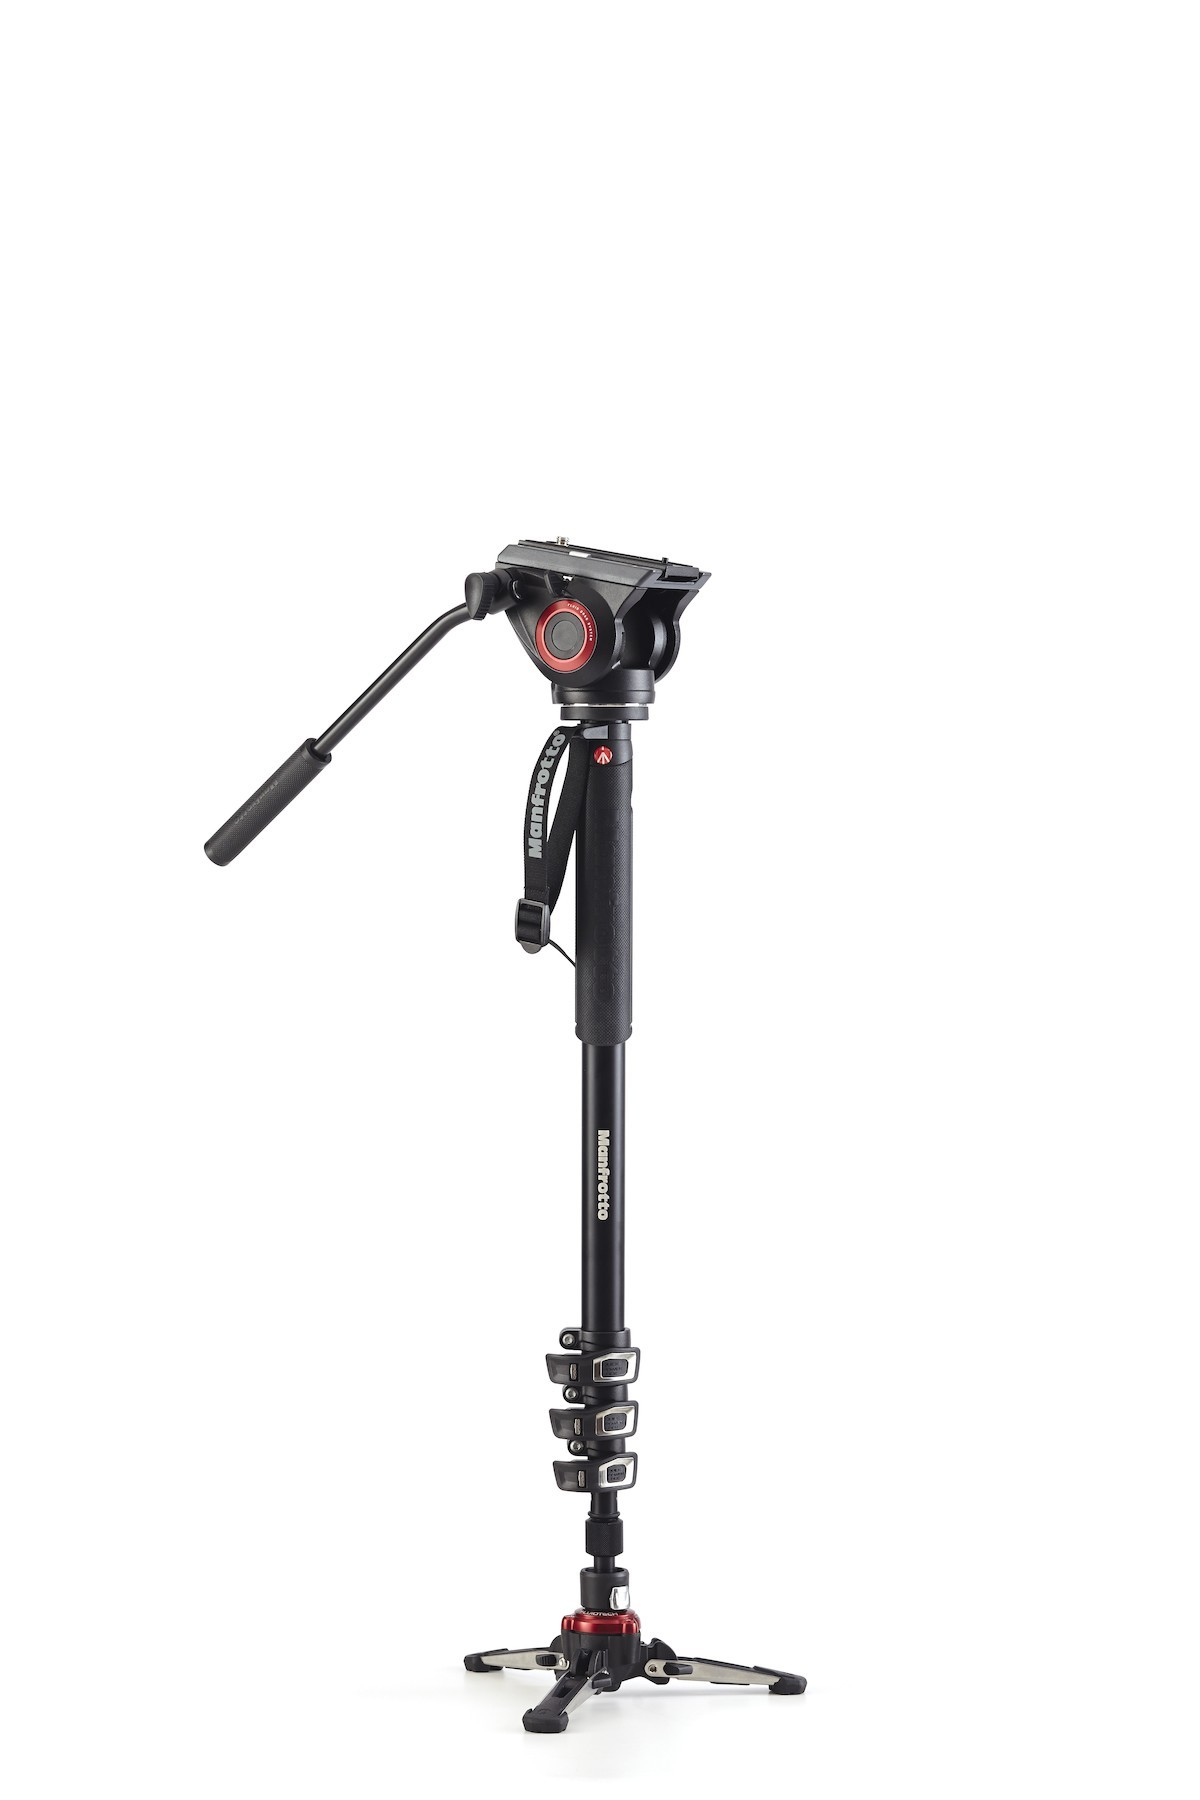 Manfrotto Monopiede video MVMXPRO500 XPRO+ con base fluida e testa video